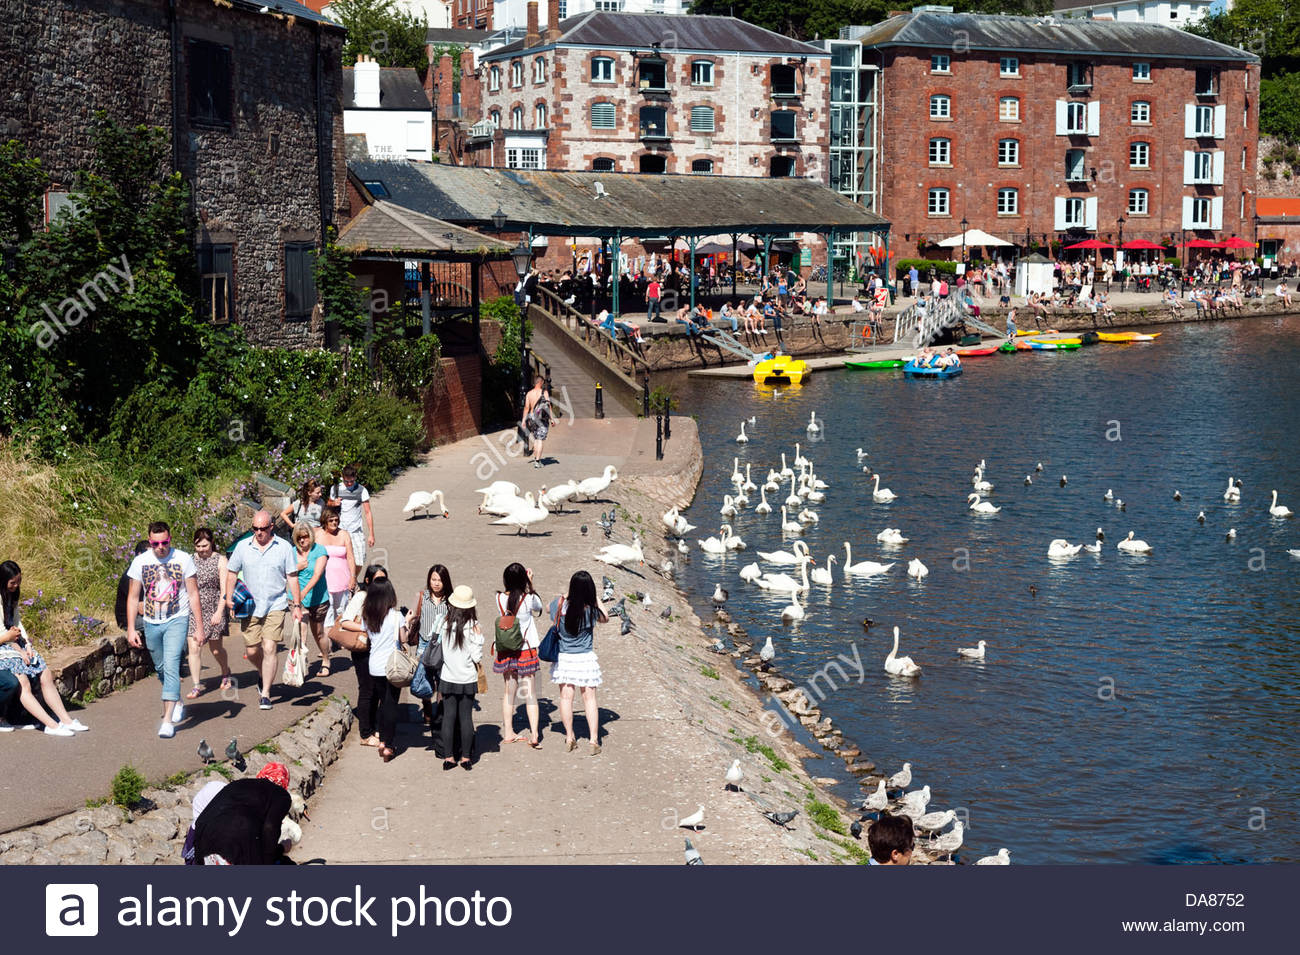 People enjoying a summer day on the riverbank at The Quay, Exeter, Devon, UK. - Stock Image